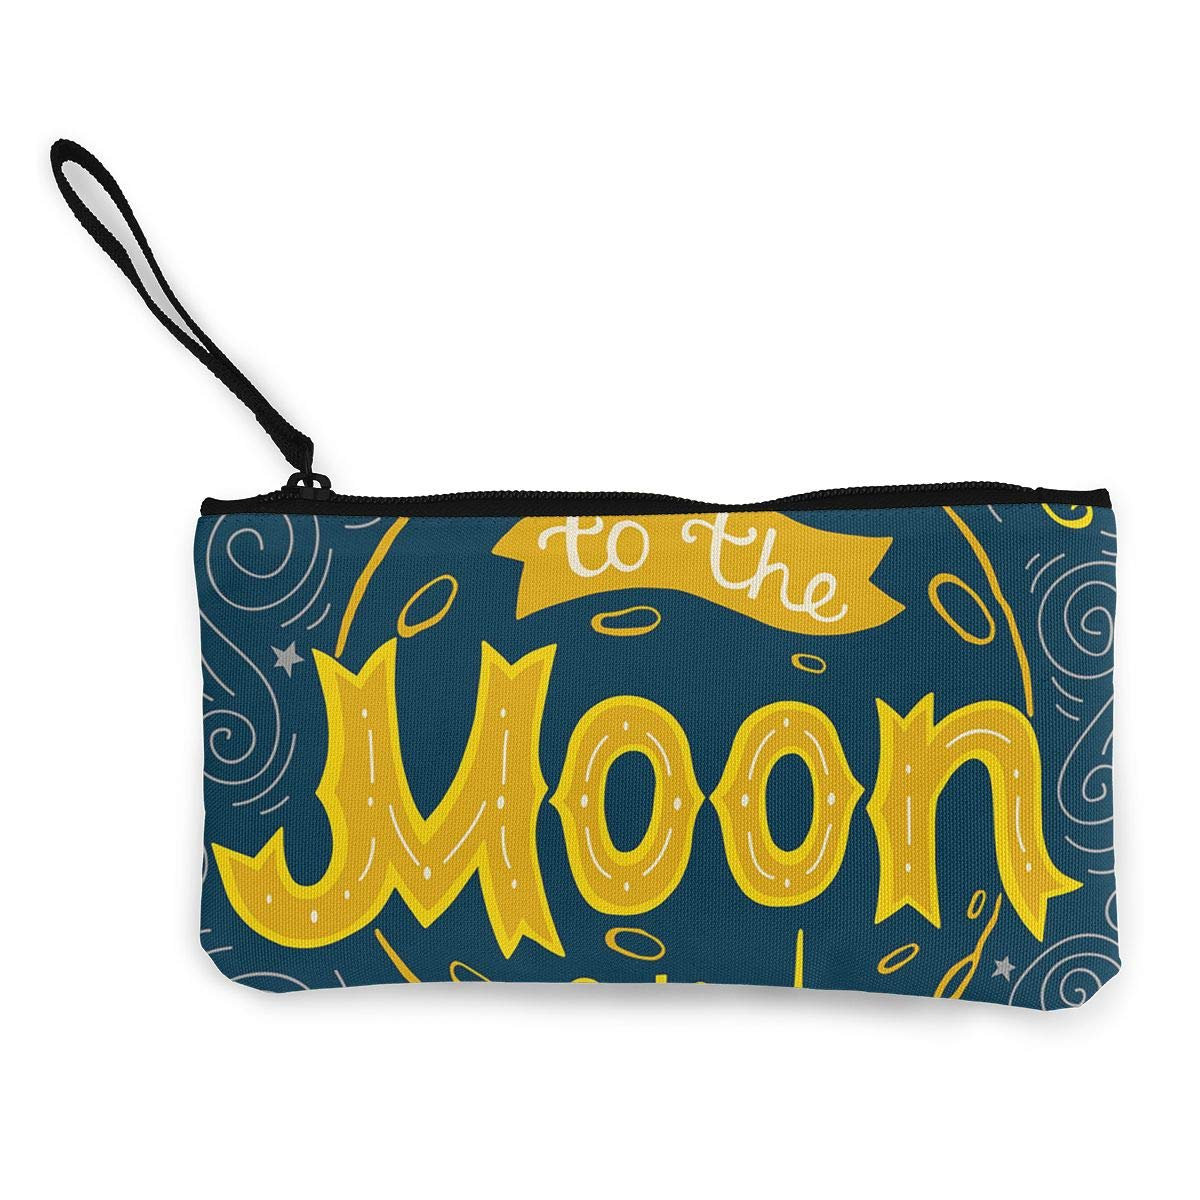 Cellphone Bag With Handle DH14hjsdDEE I Love You To The Moon And Back Zipper Canvas Coin Purse Wallet Make Up Bag